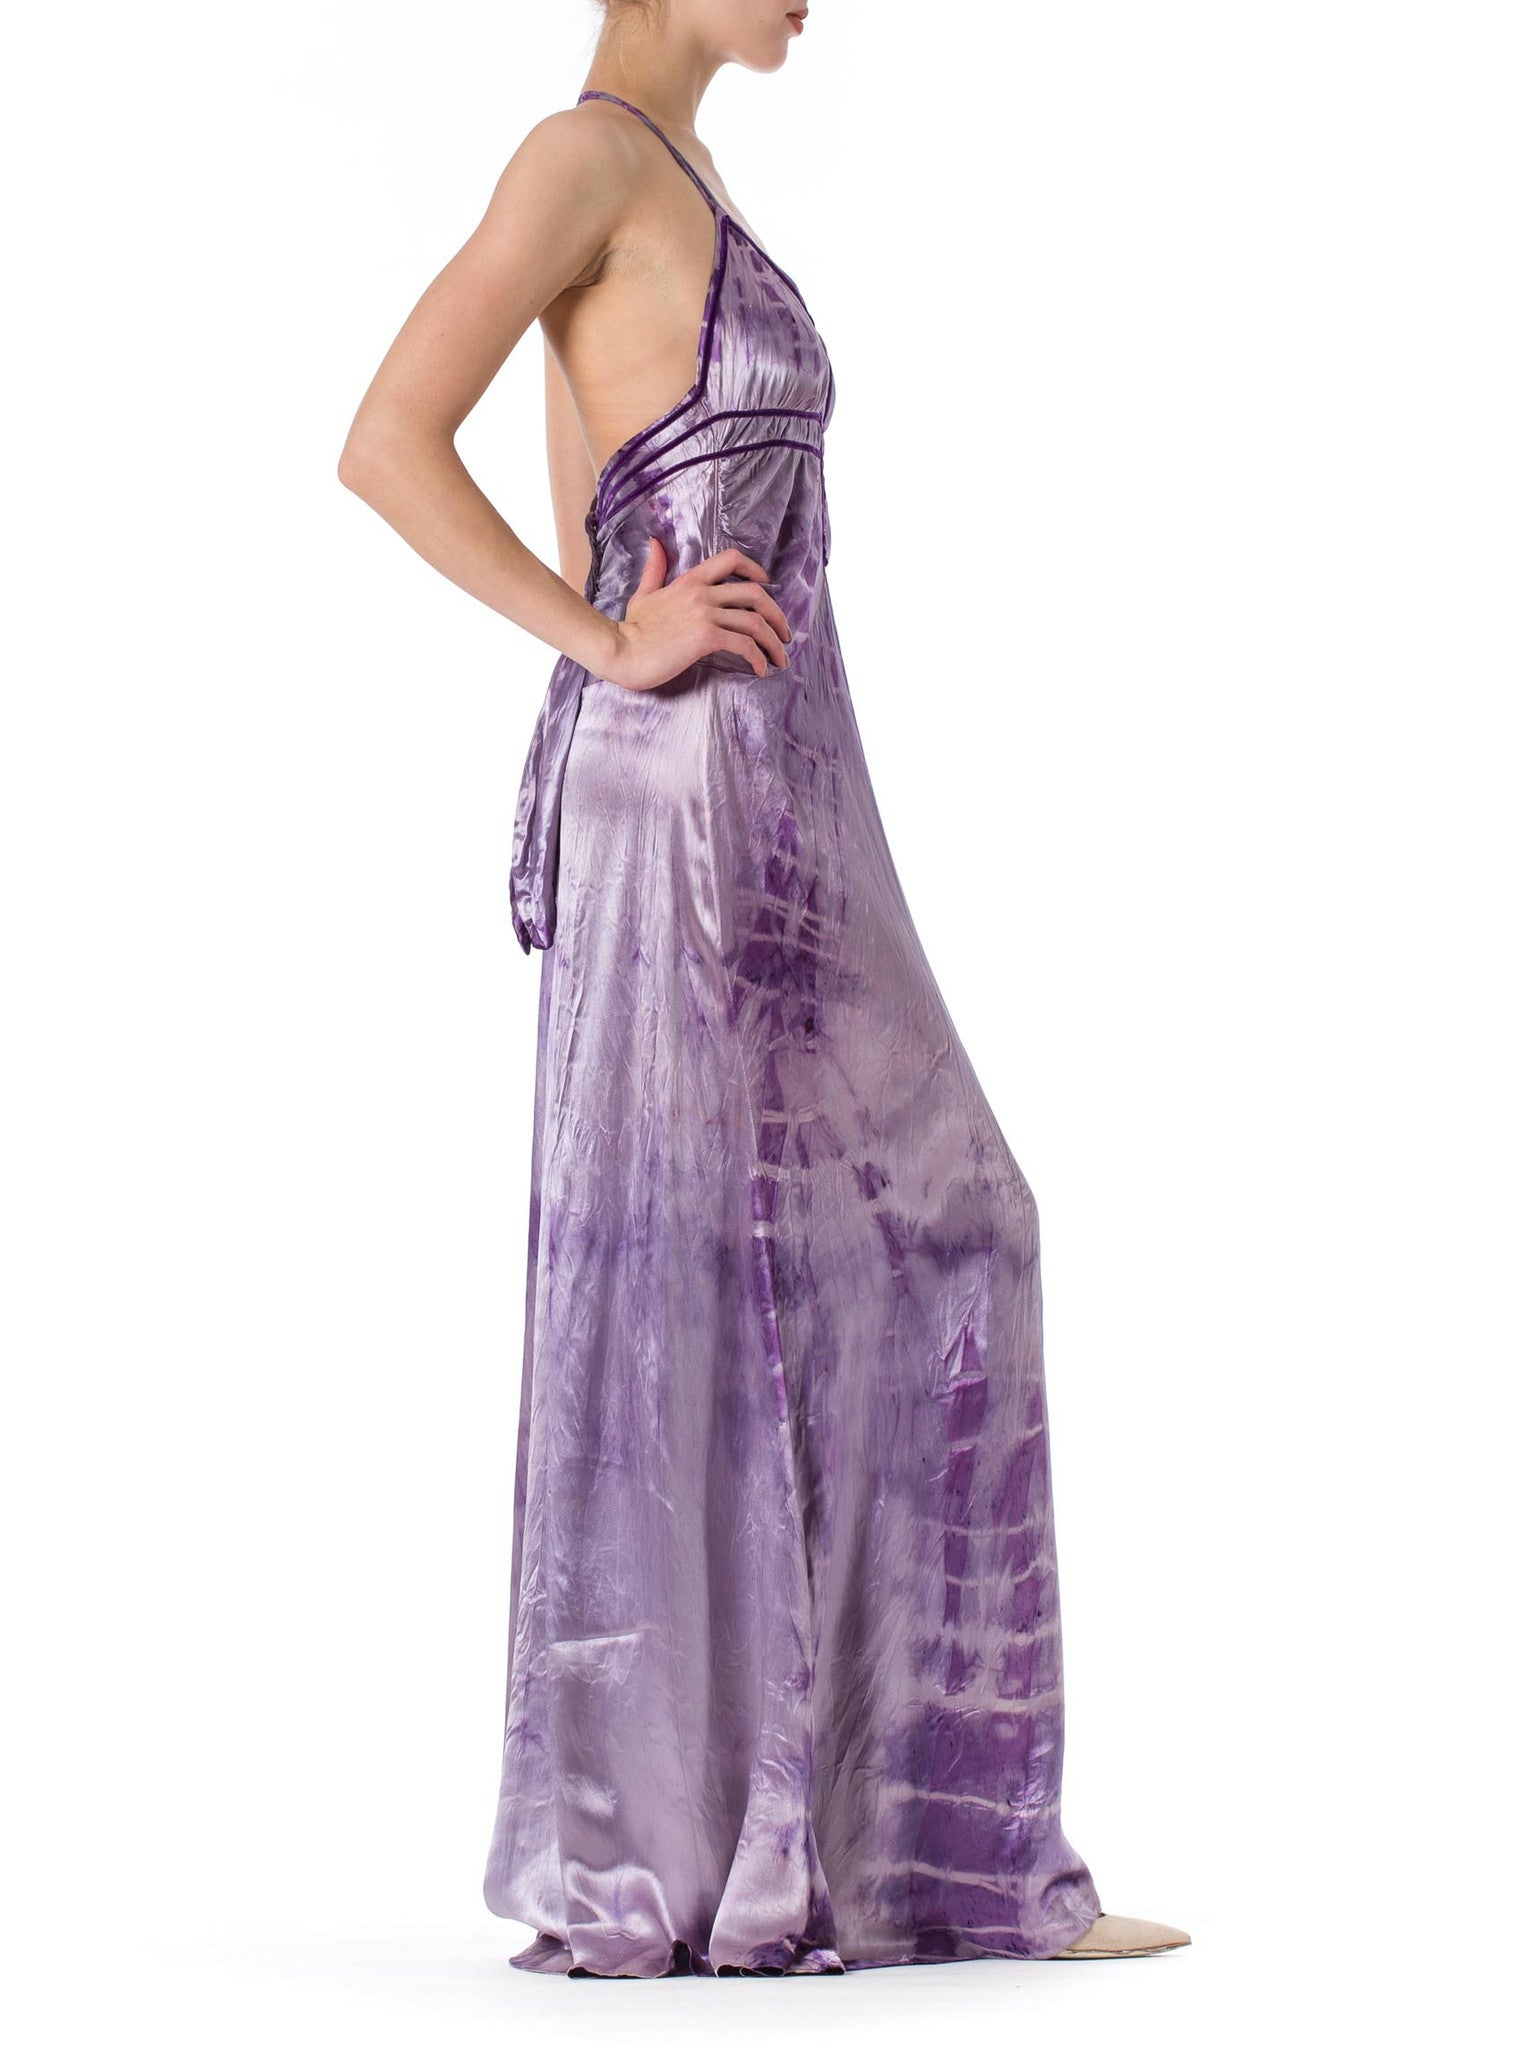 MORPHEW COLLECTION Lilac Tie Dyed Silk Charmeuse  Gown Re-Worked From A 1930S Bergdorf Goodman